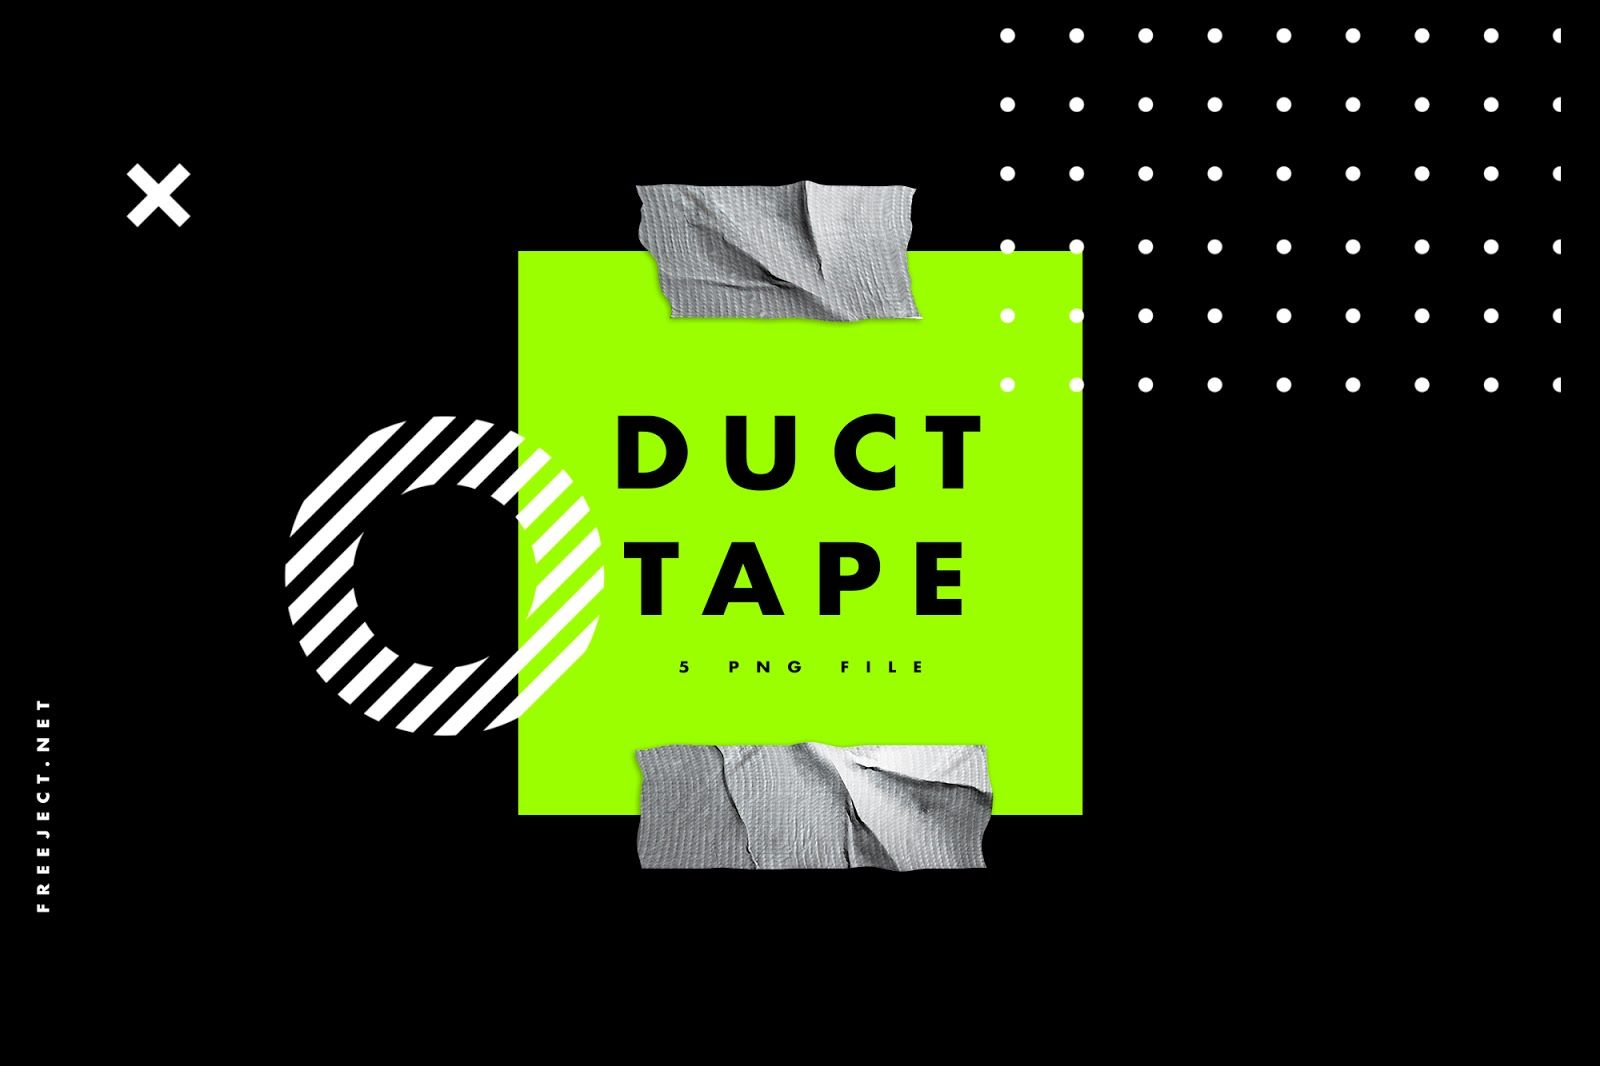 Duct Glued Texture Tape Free Download Png File Free Graphic Design Design Tape Photoshop Design